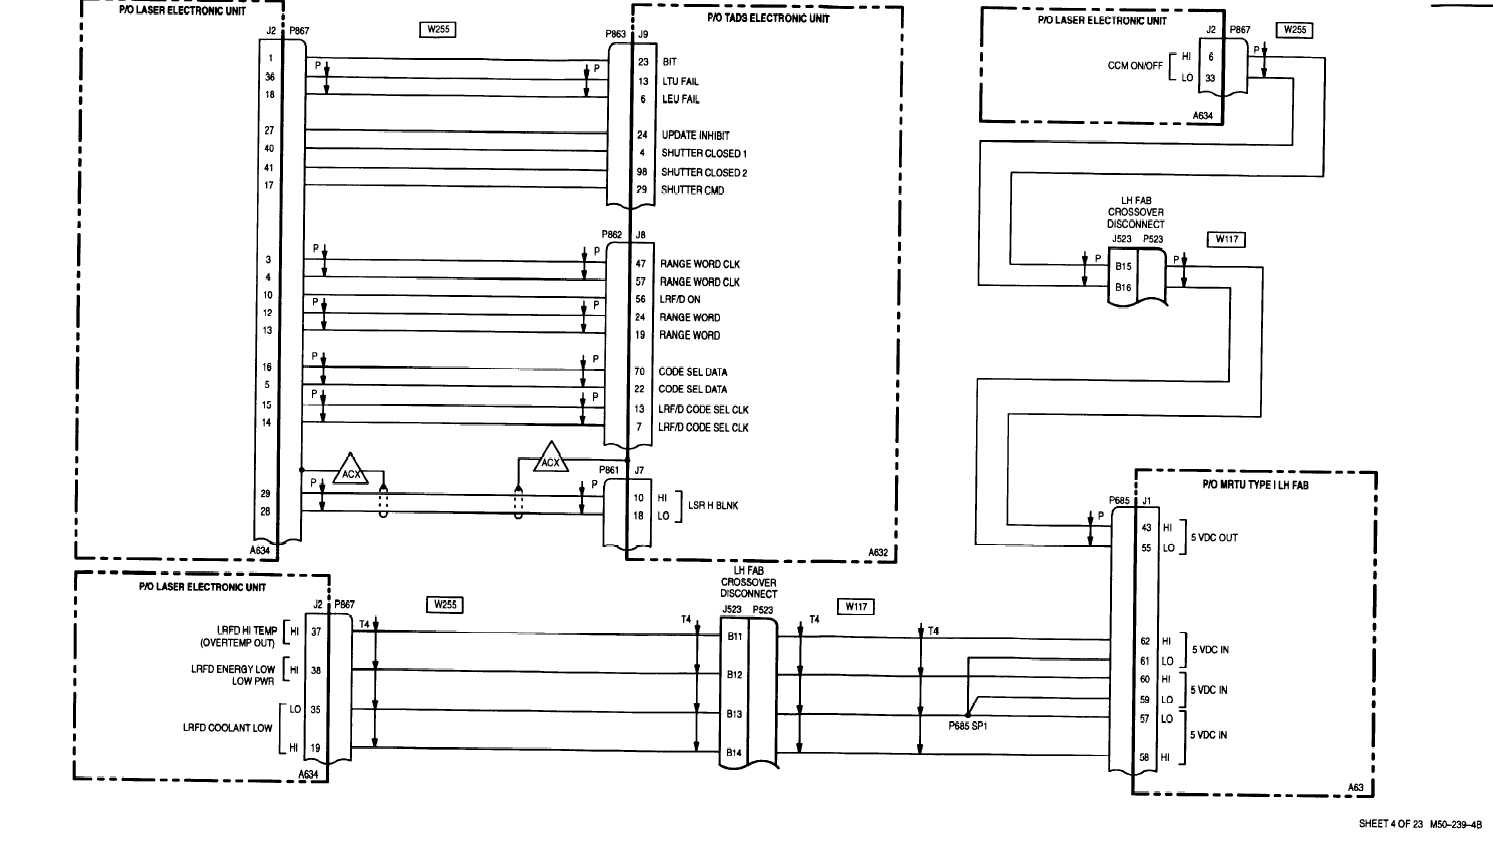 24-1. tads - wiring diagram (cont) - tm-1-1520-238-t-10_572 wiring diagram t i 1990 lincoln town car i please have a wiring diagram #15